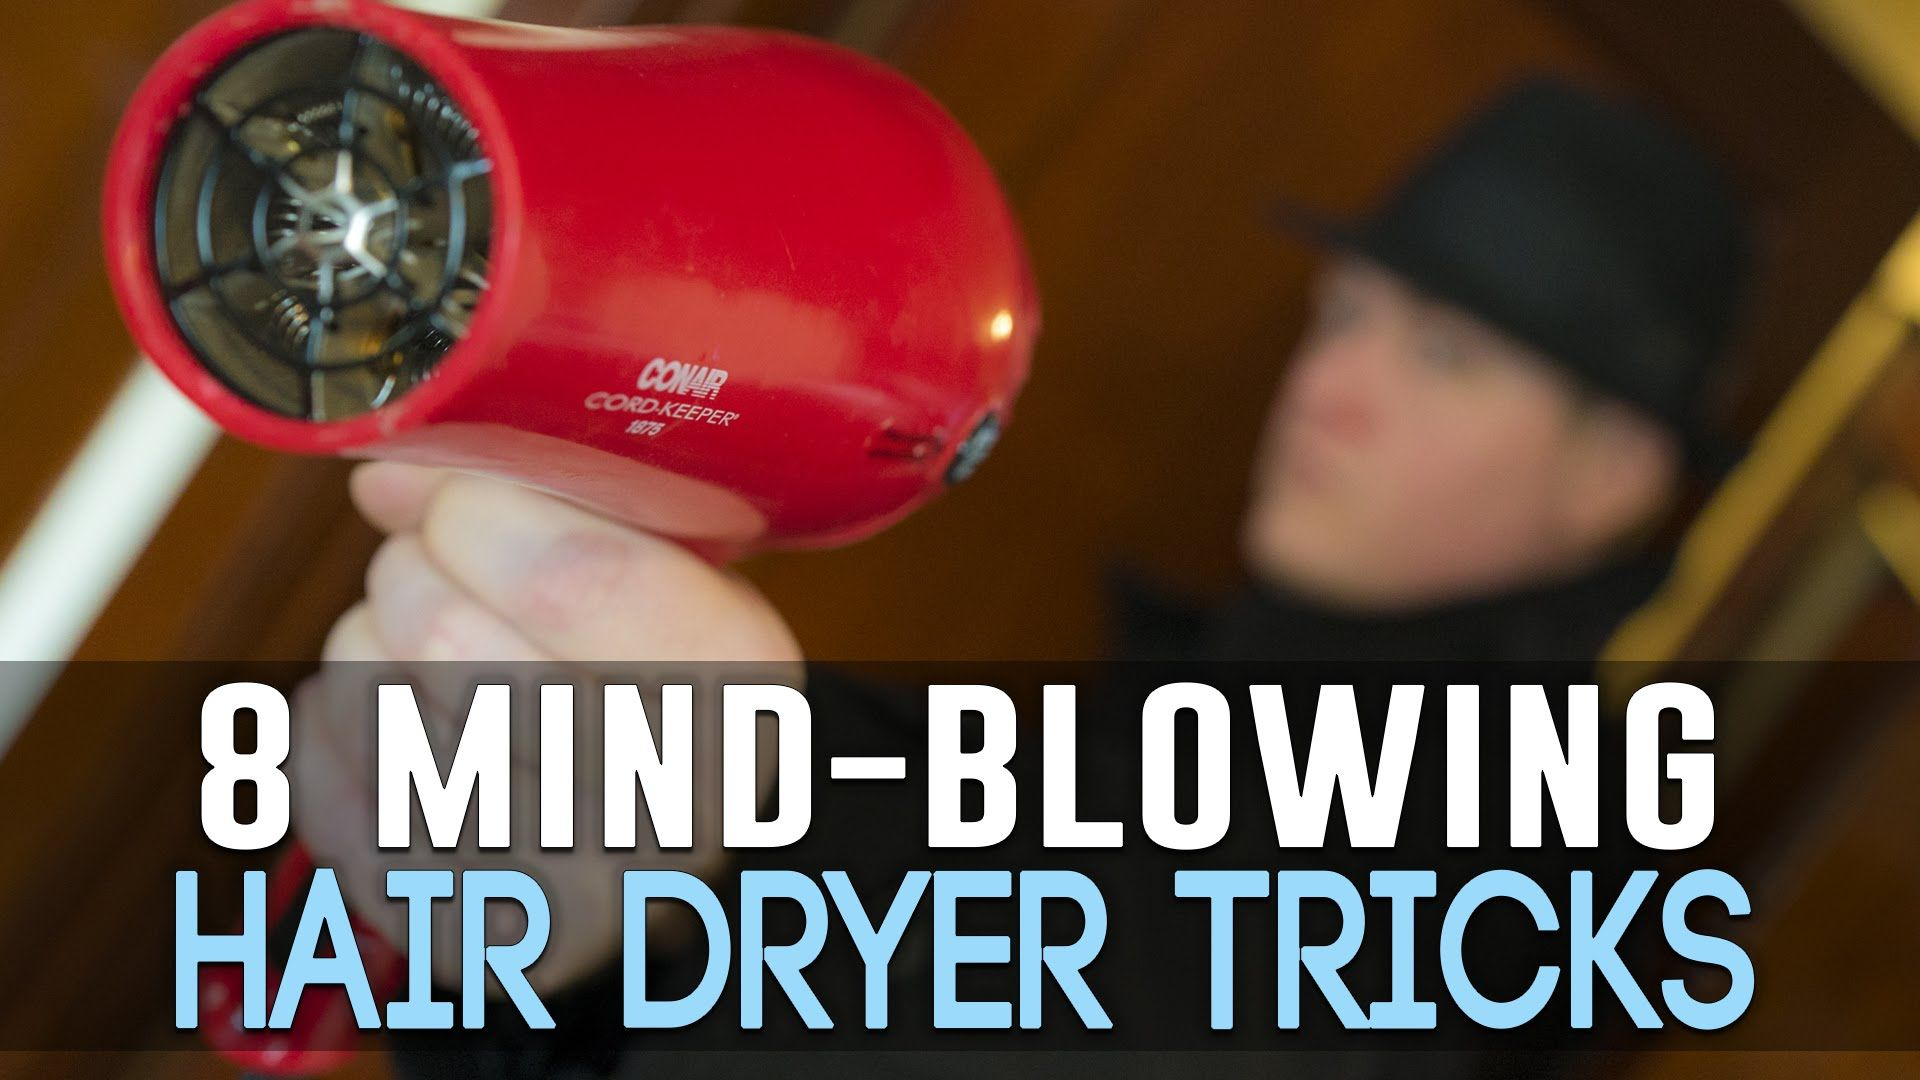 8 mindblowing ways to use your hair dryer hair dryer